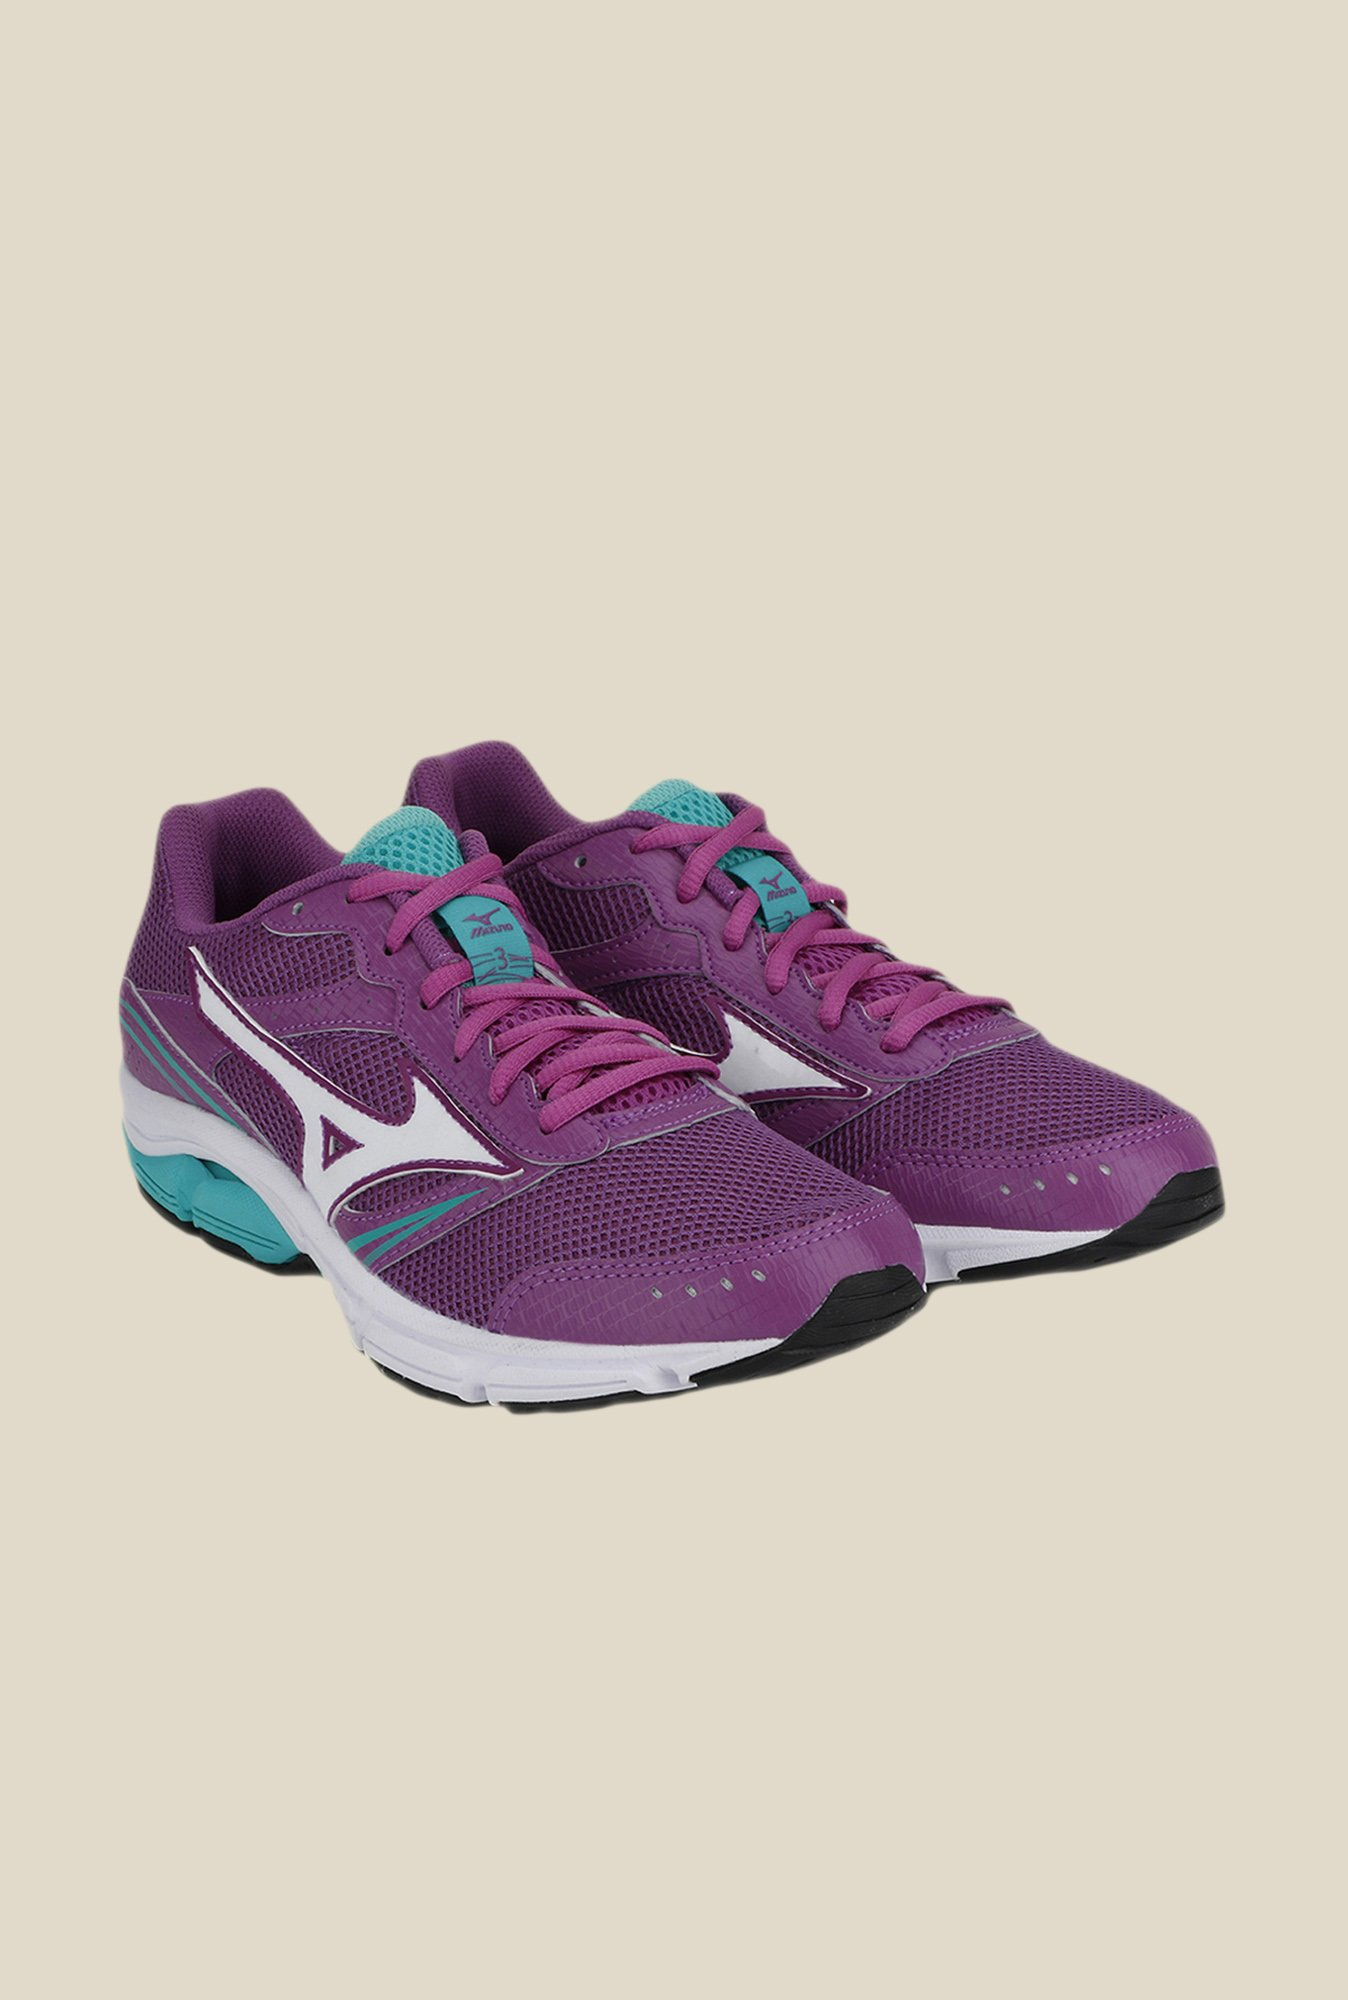 Mizuno Wave Impetus 3 Purple & White Running Shoes